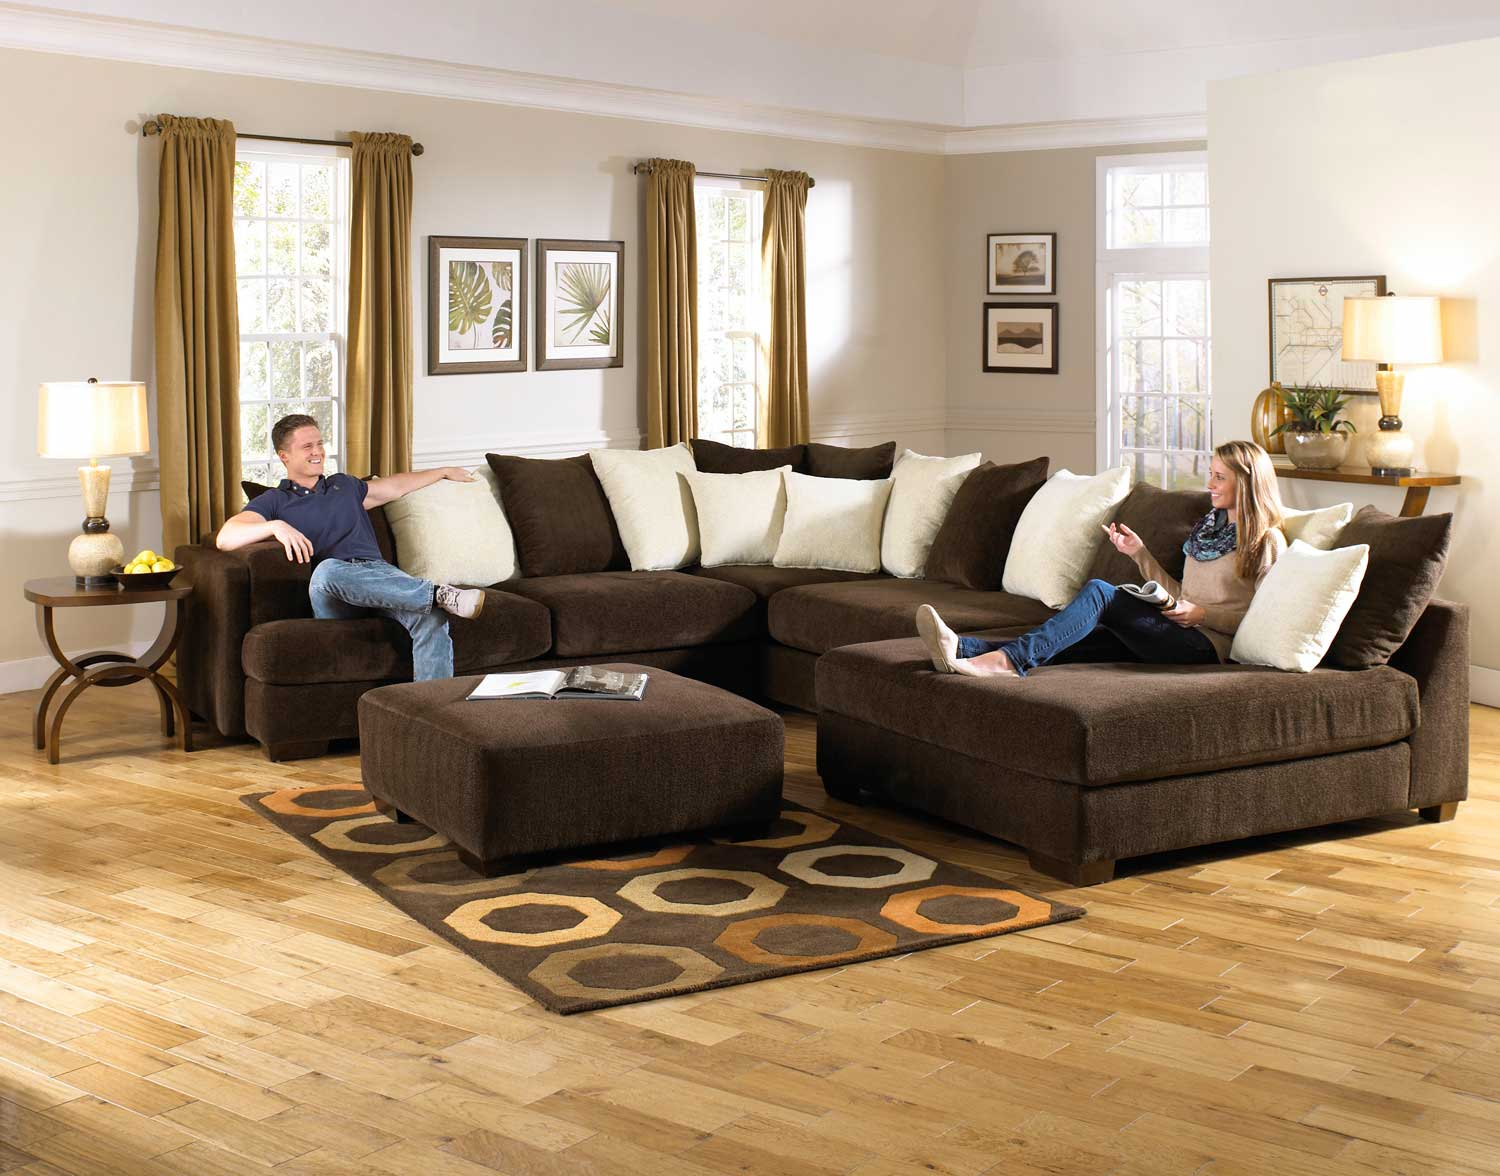 Jackson axis large sectional sofa set chocolate 4429 62 for Large living room sofas